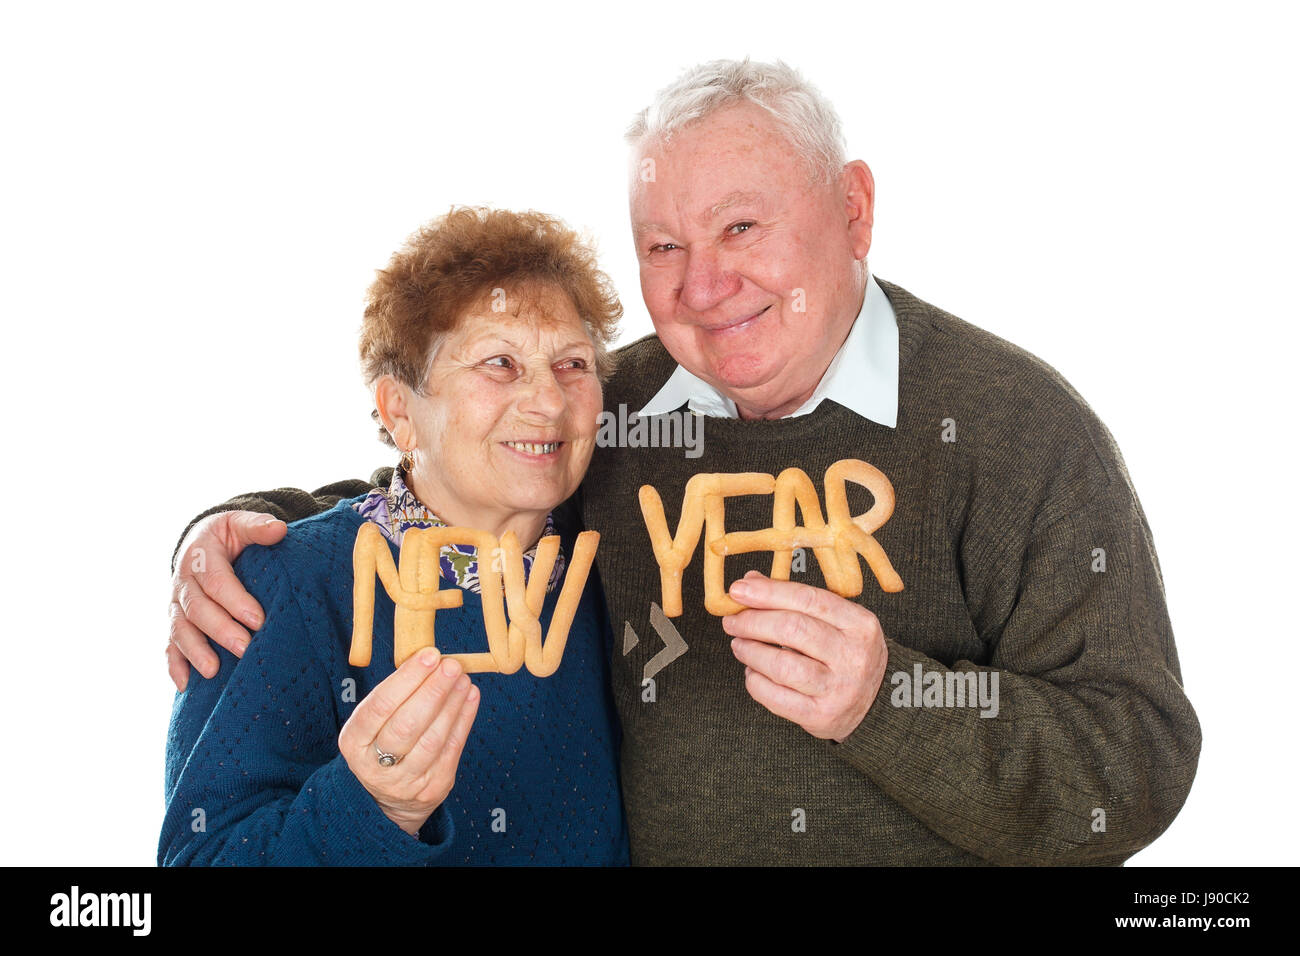 Picture of an elderly couple celebrating new year - isolated background - Stock Image